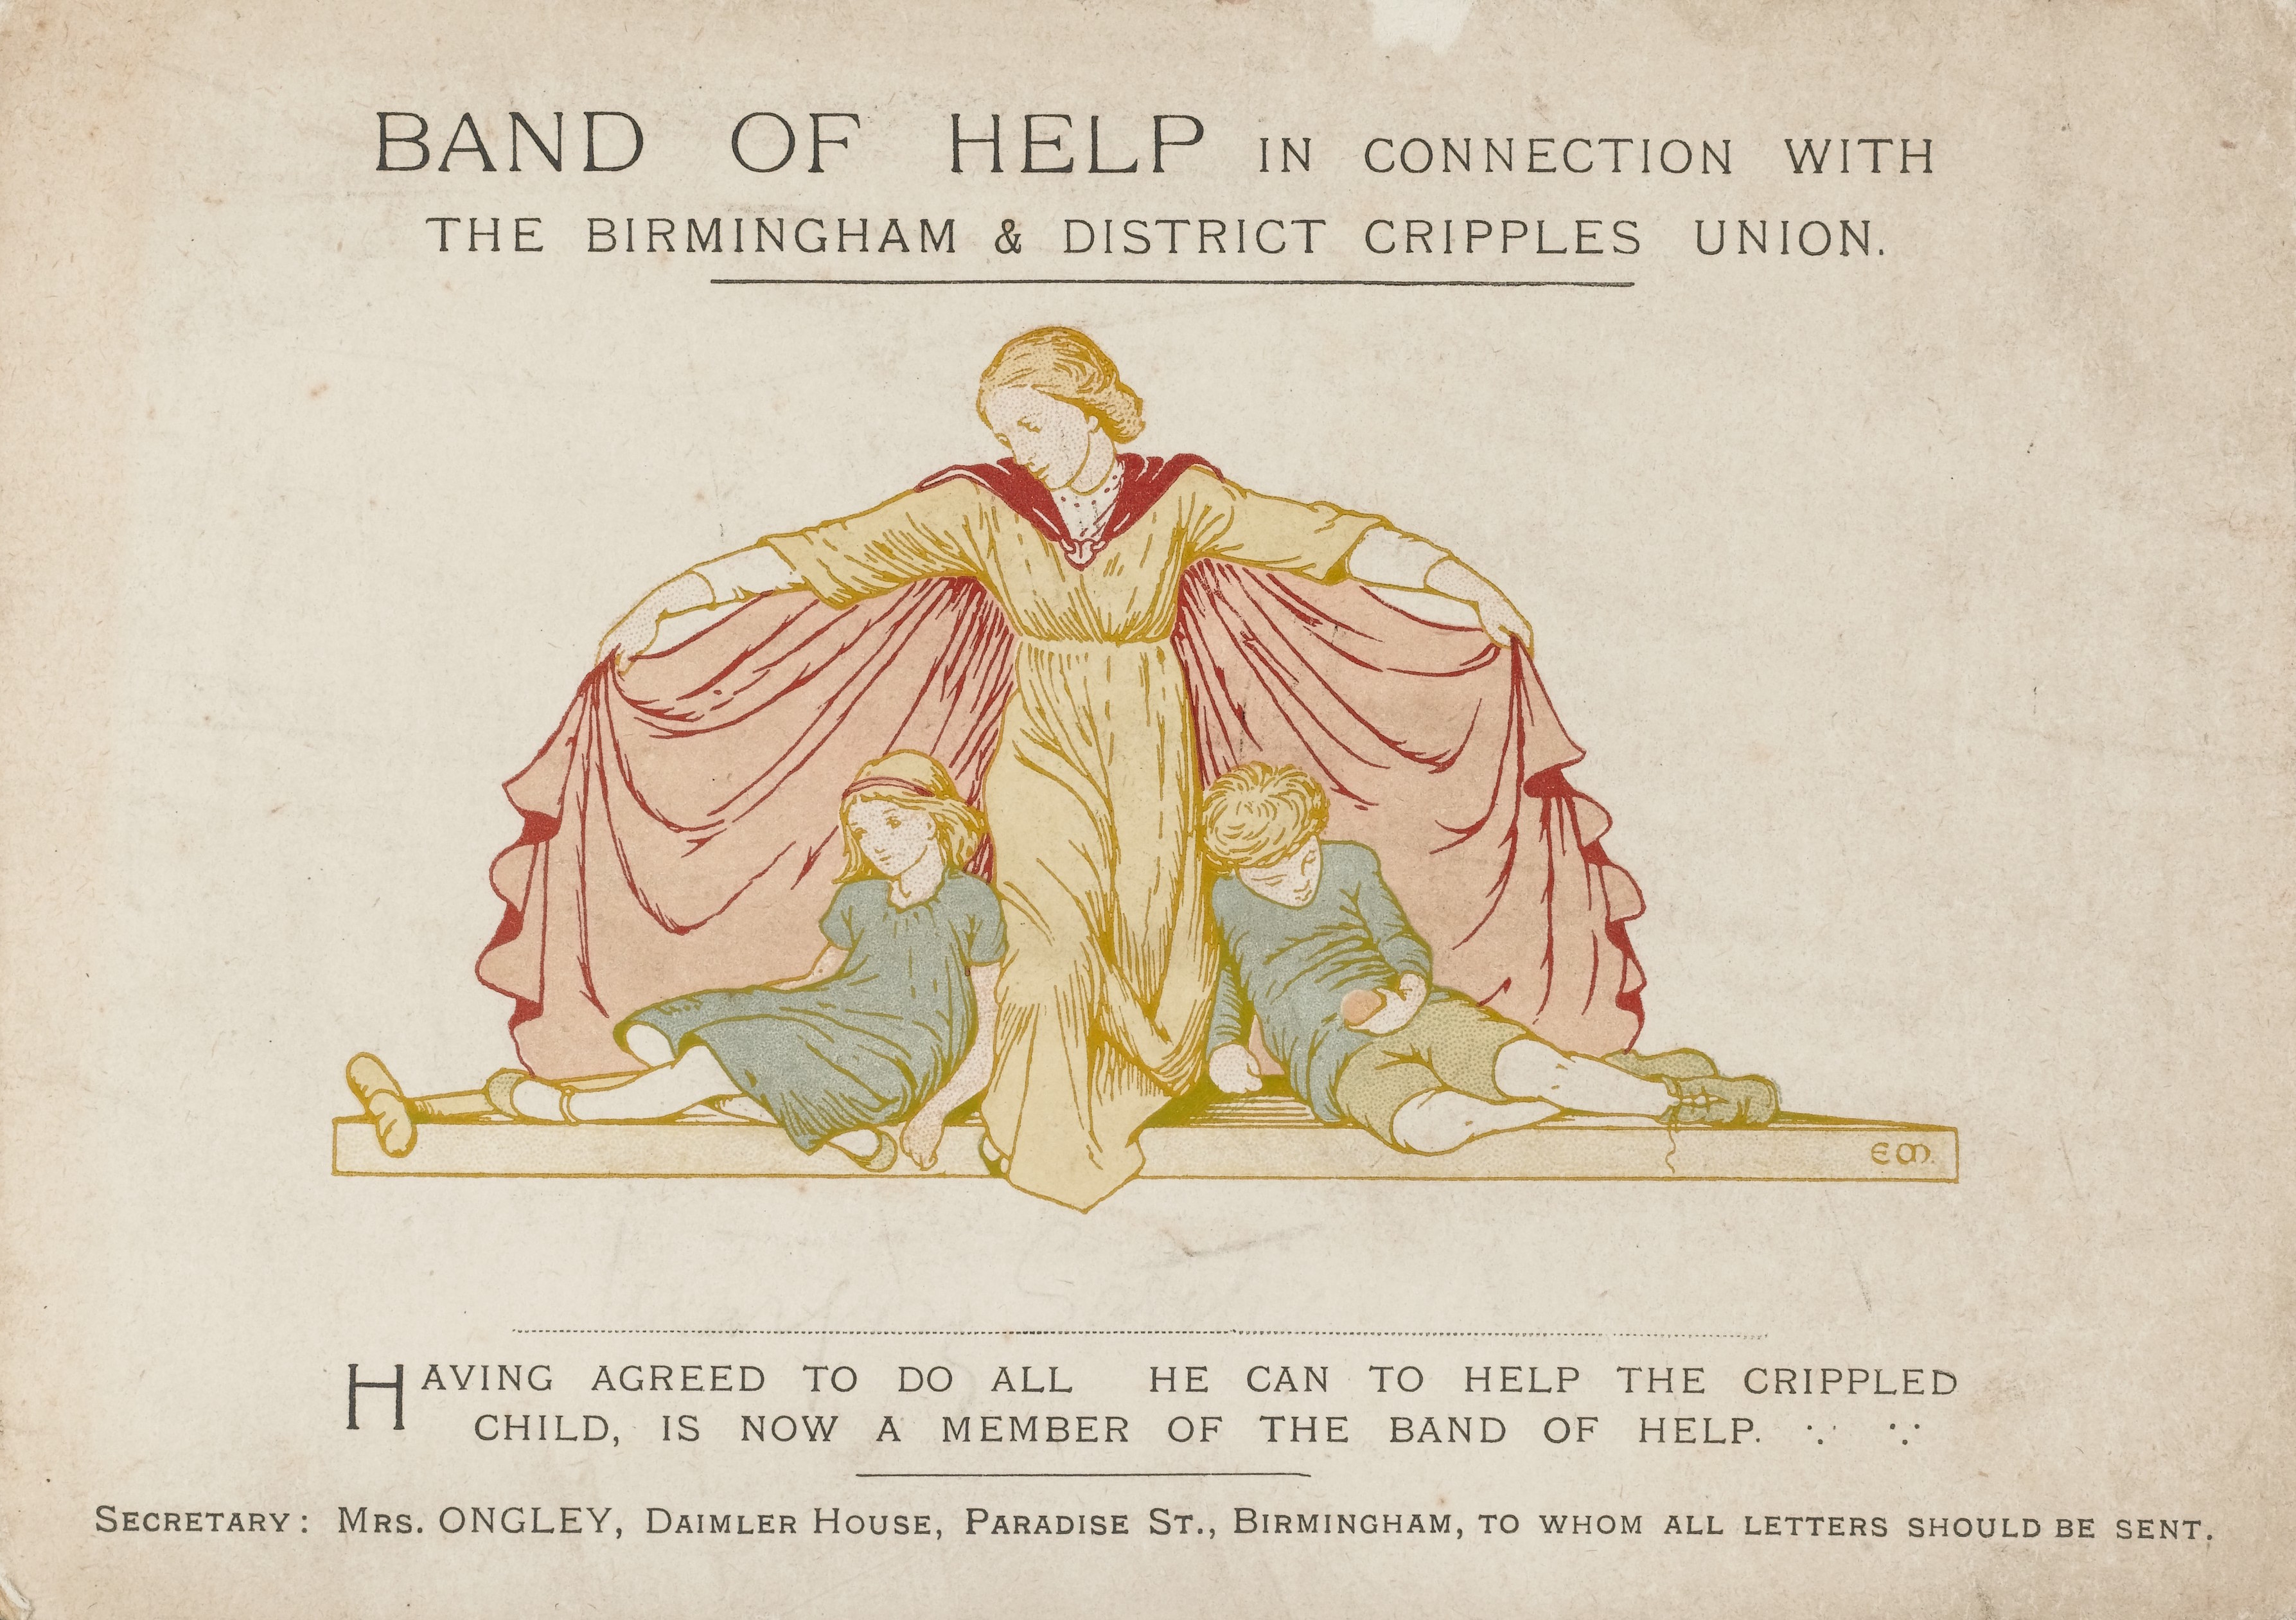 'Band of Help' members certificate. The Birmingham and District Cripples Union. Picture of a lady spreading her cape wide to embrace two crippled children.